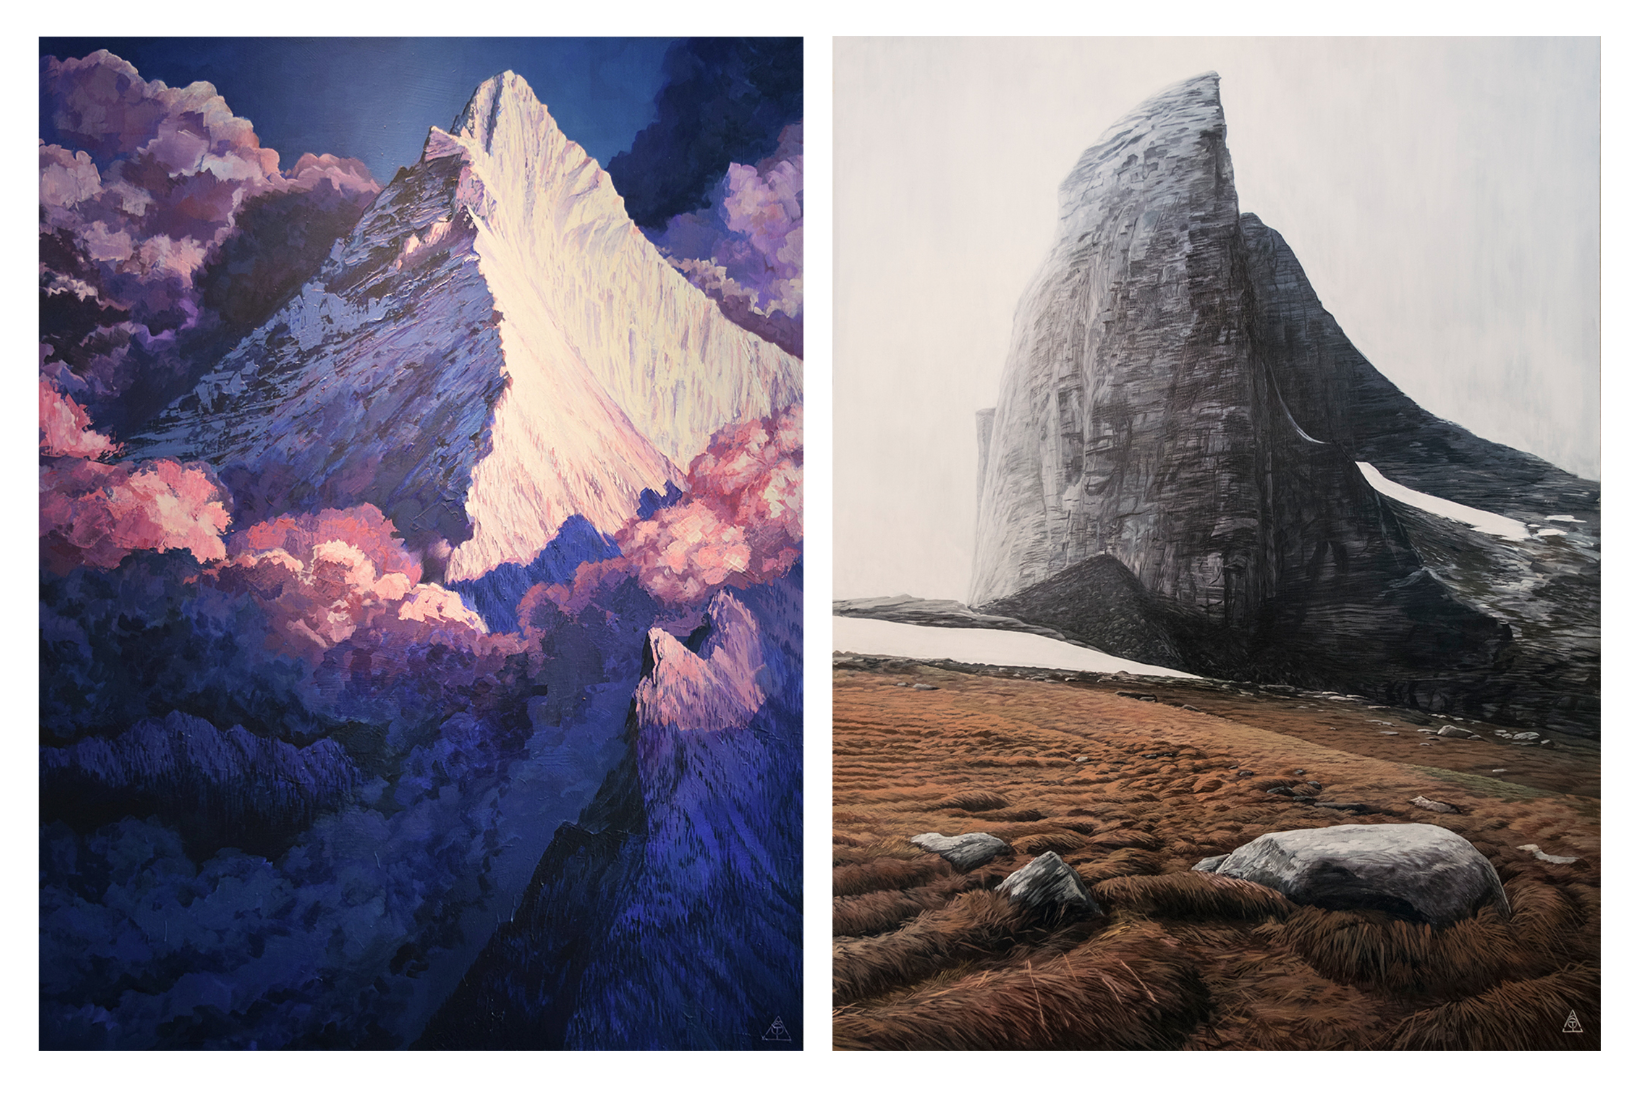 """Fisher Peak: Acrylic on wood, 36"""" x 48"""" (left) and Mount Gimli: Acrylic on wood, 36"""" x 48"""" by Adam J. Temple.  Retail: $2,500 (each). Bidding begins at $1,250 (each)."""